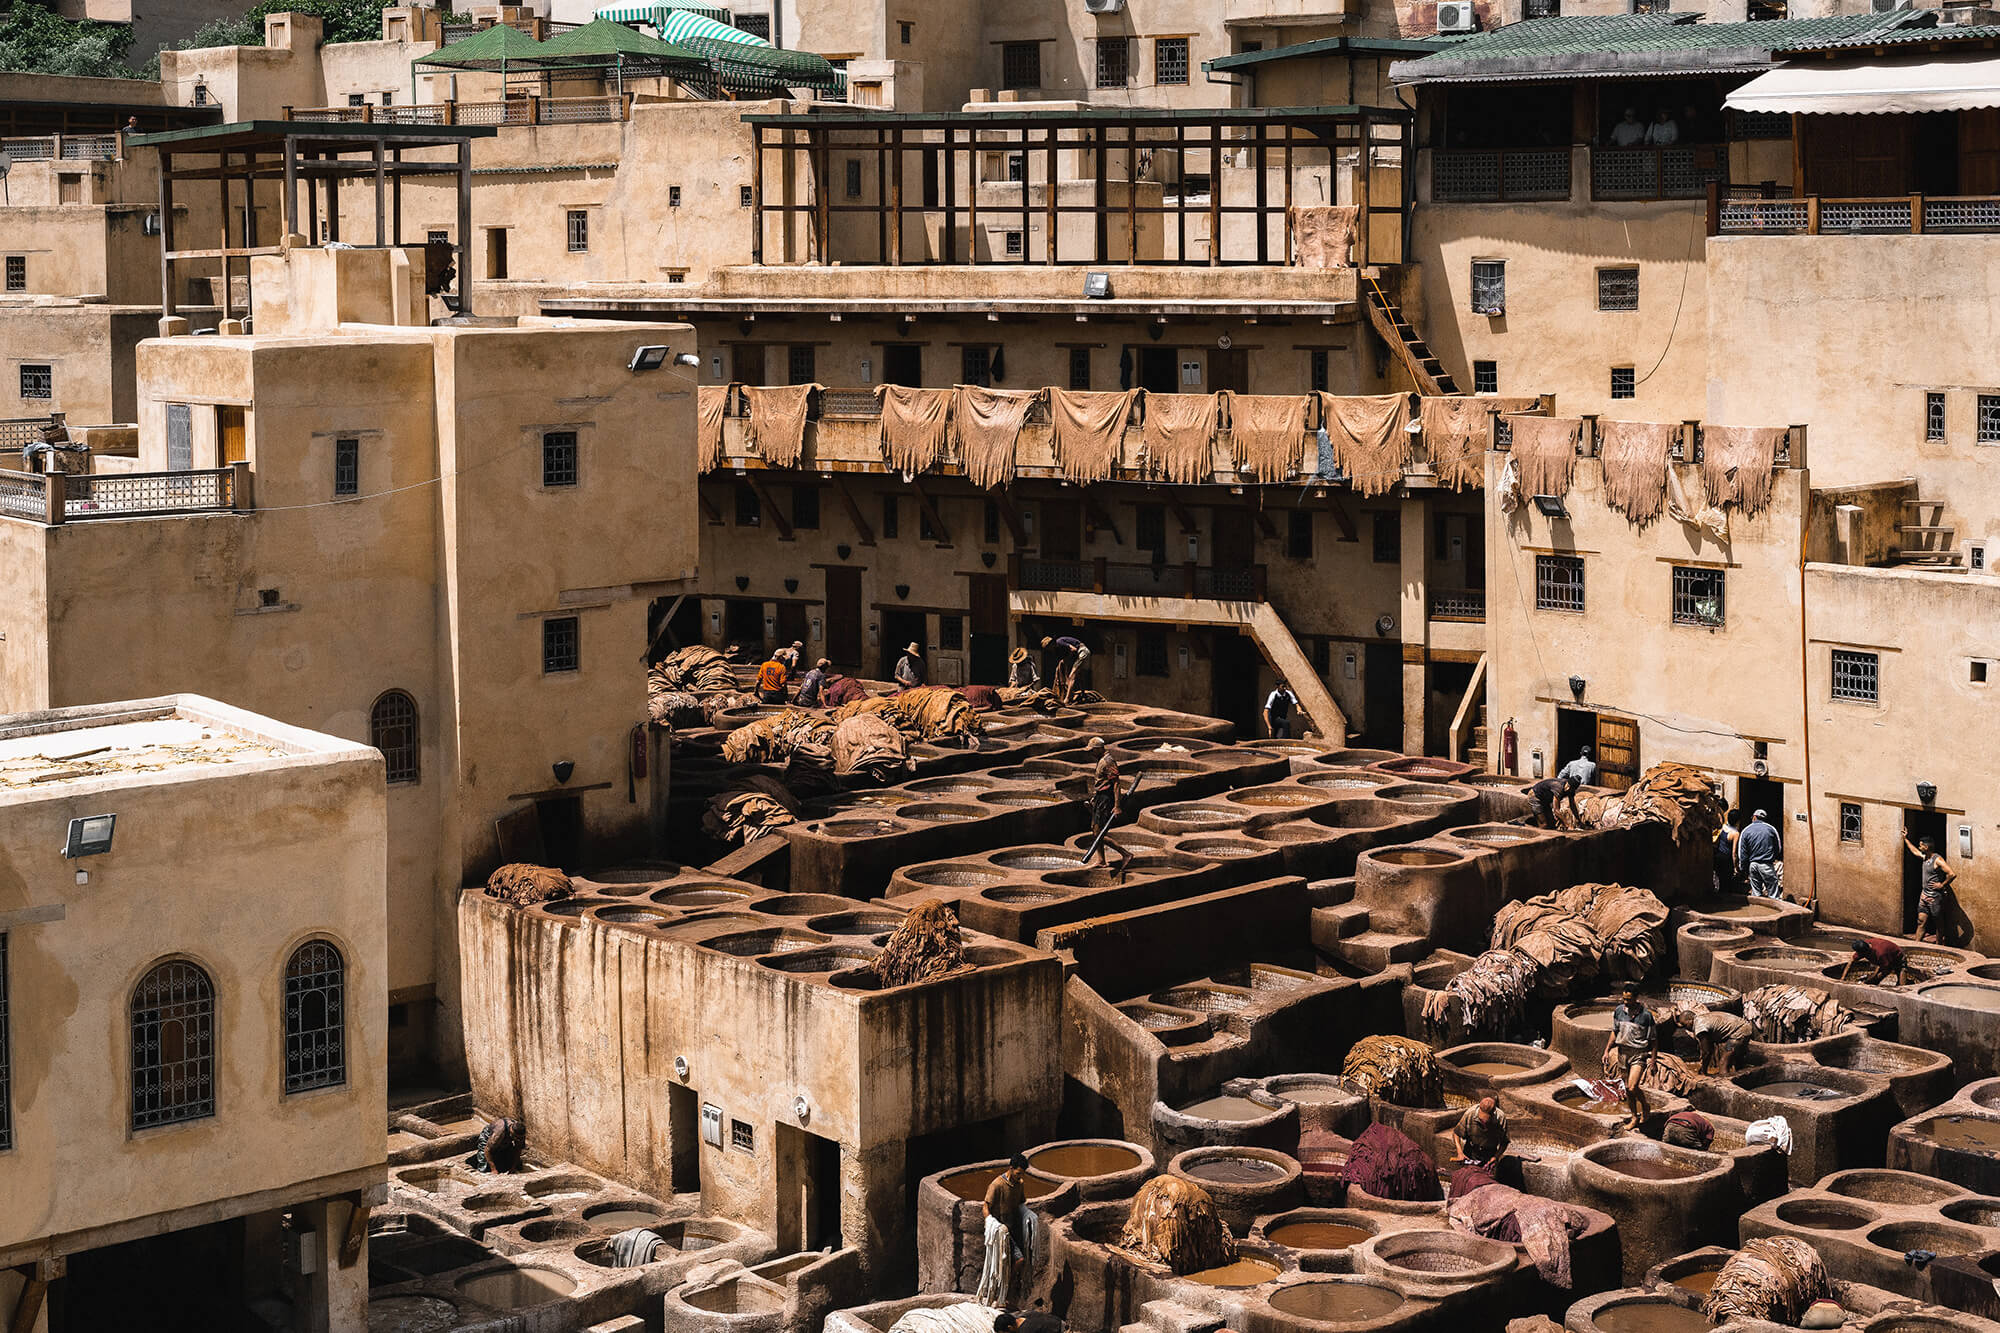 Sahara Desert Tour - Top Ten Things To Do in Morocco - Sensory experience at the Chouara Tannery Fez